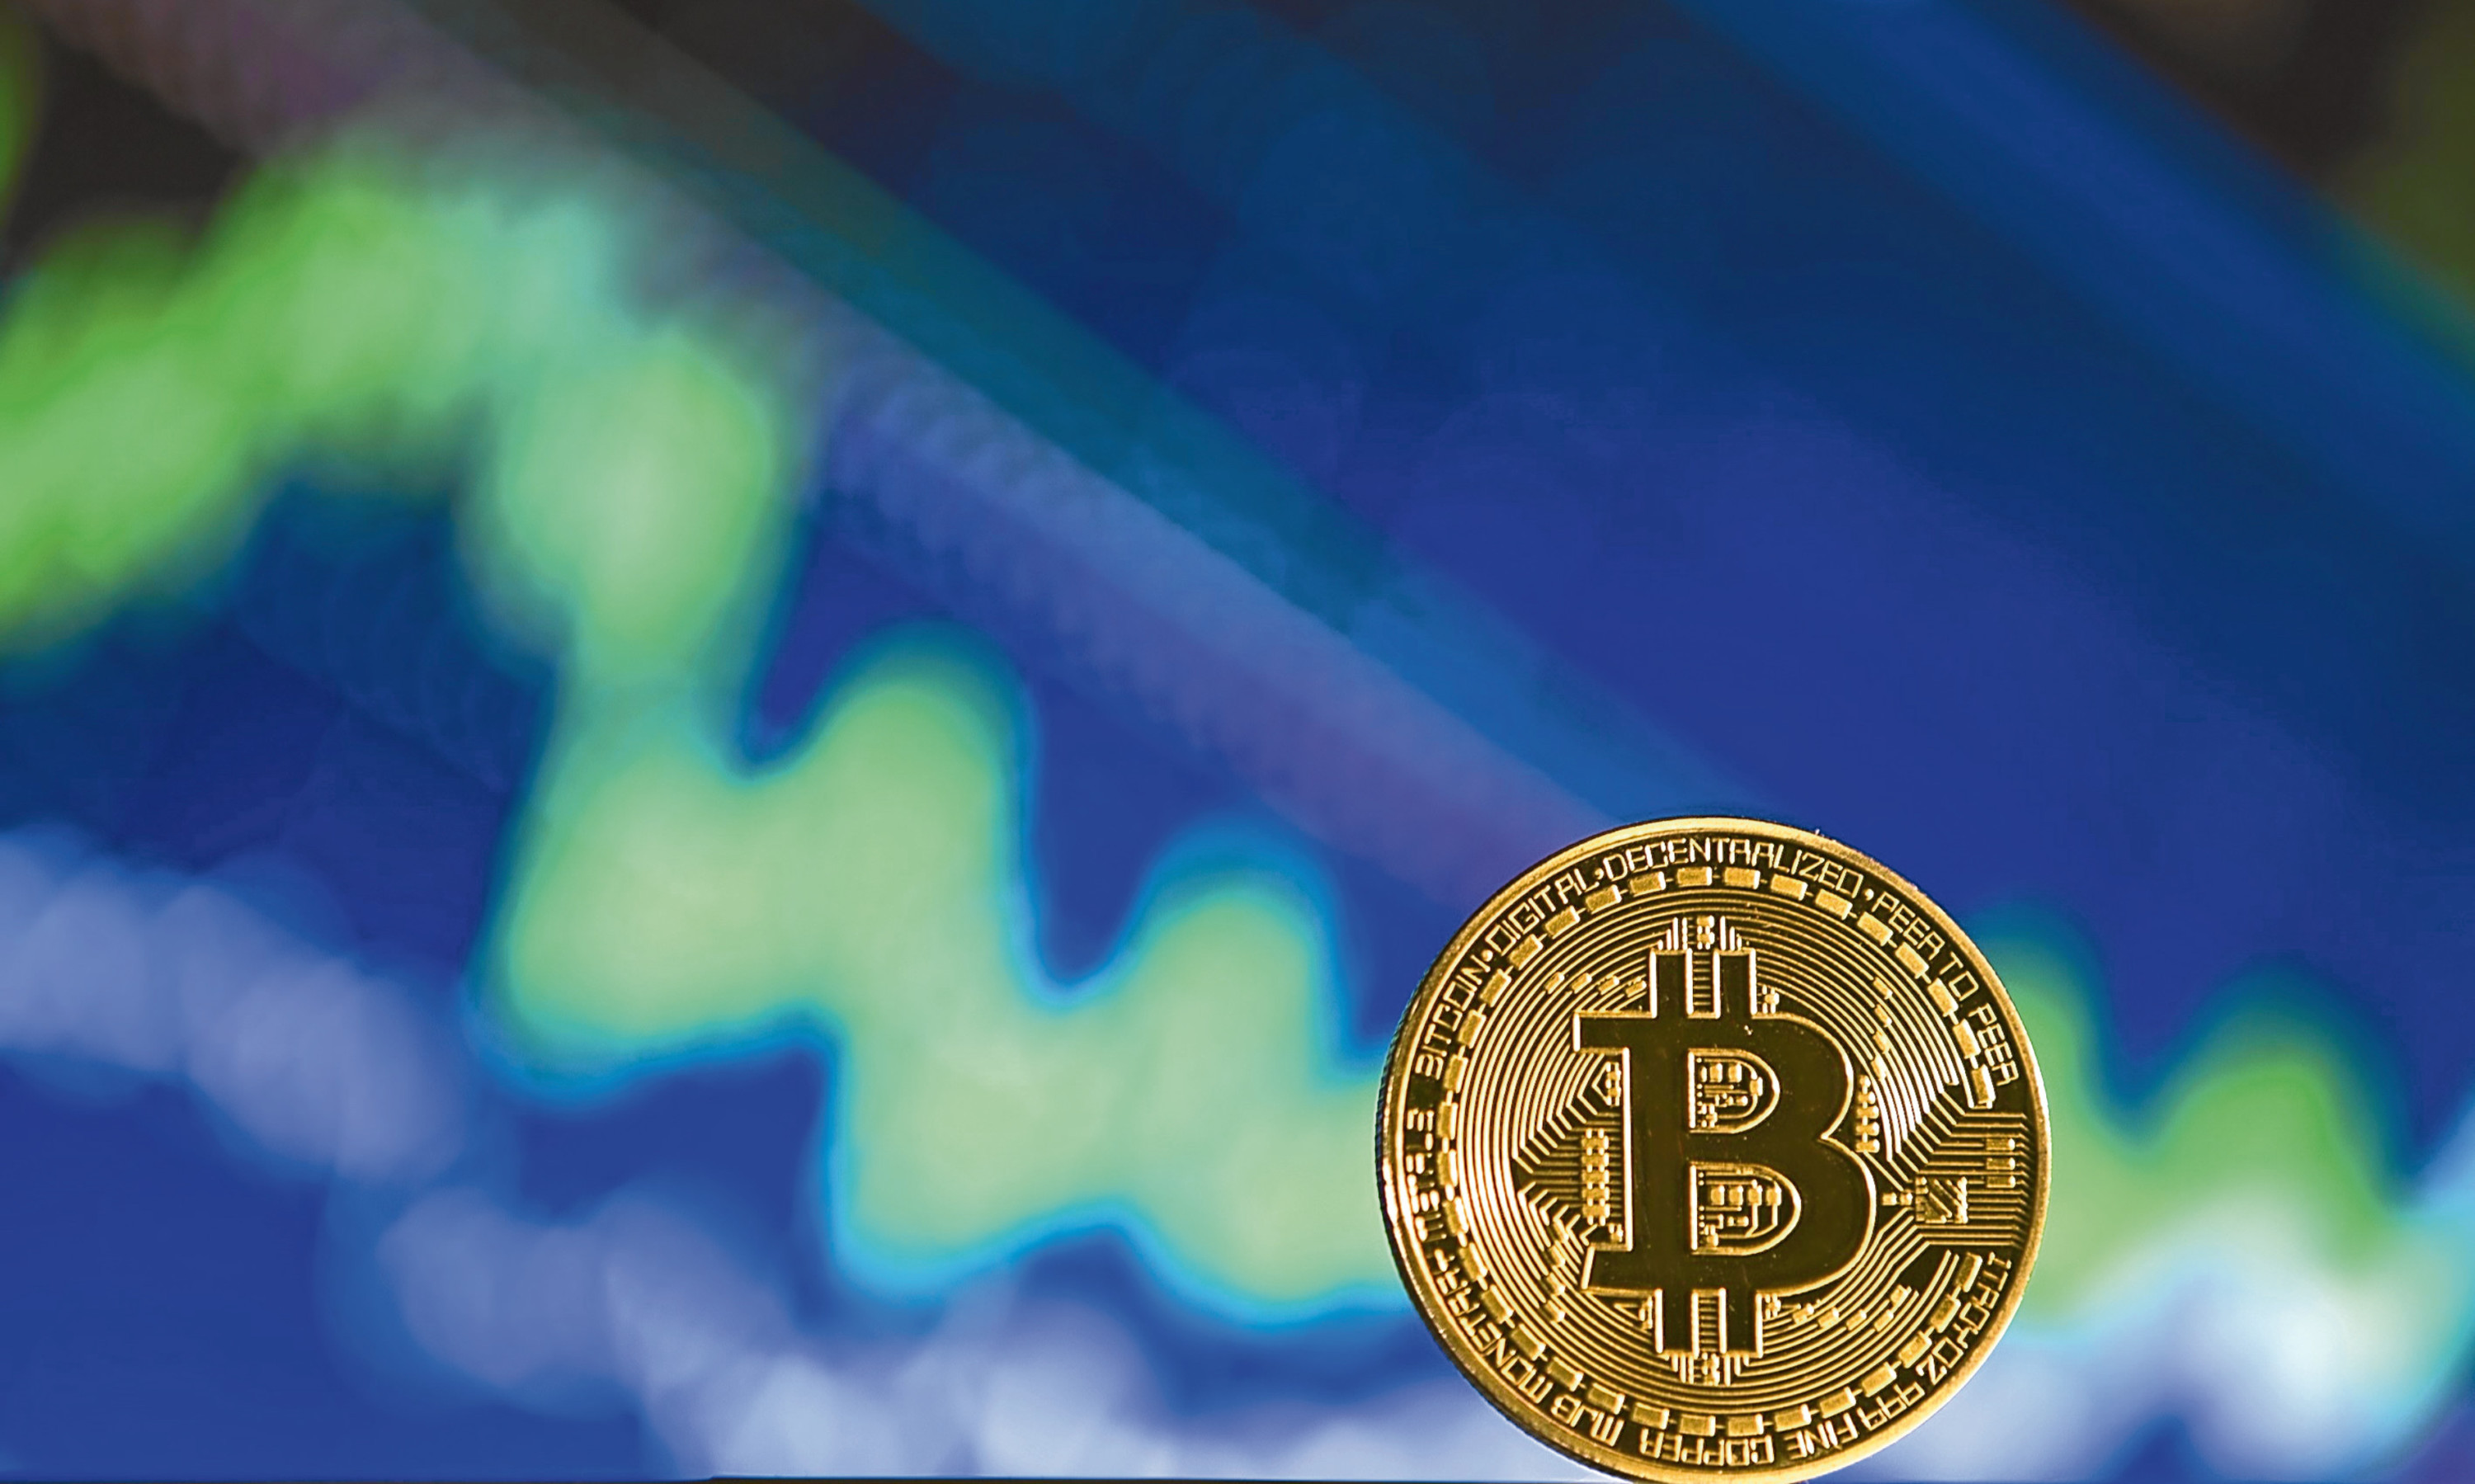 Bitcoin's share value has been on a rollercoaster ride in recent months